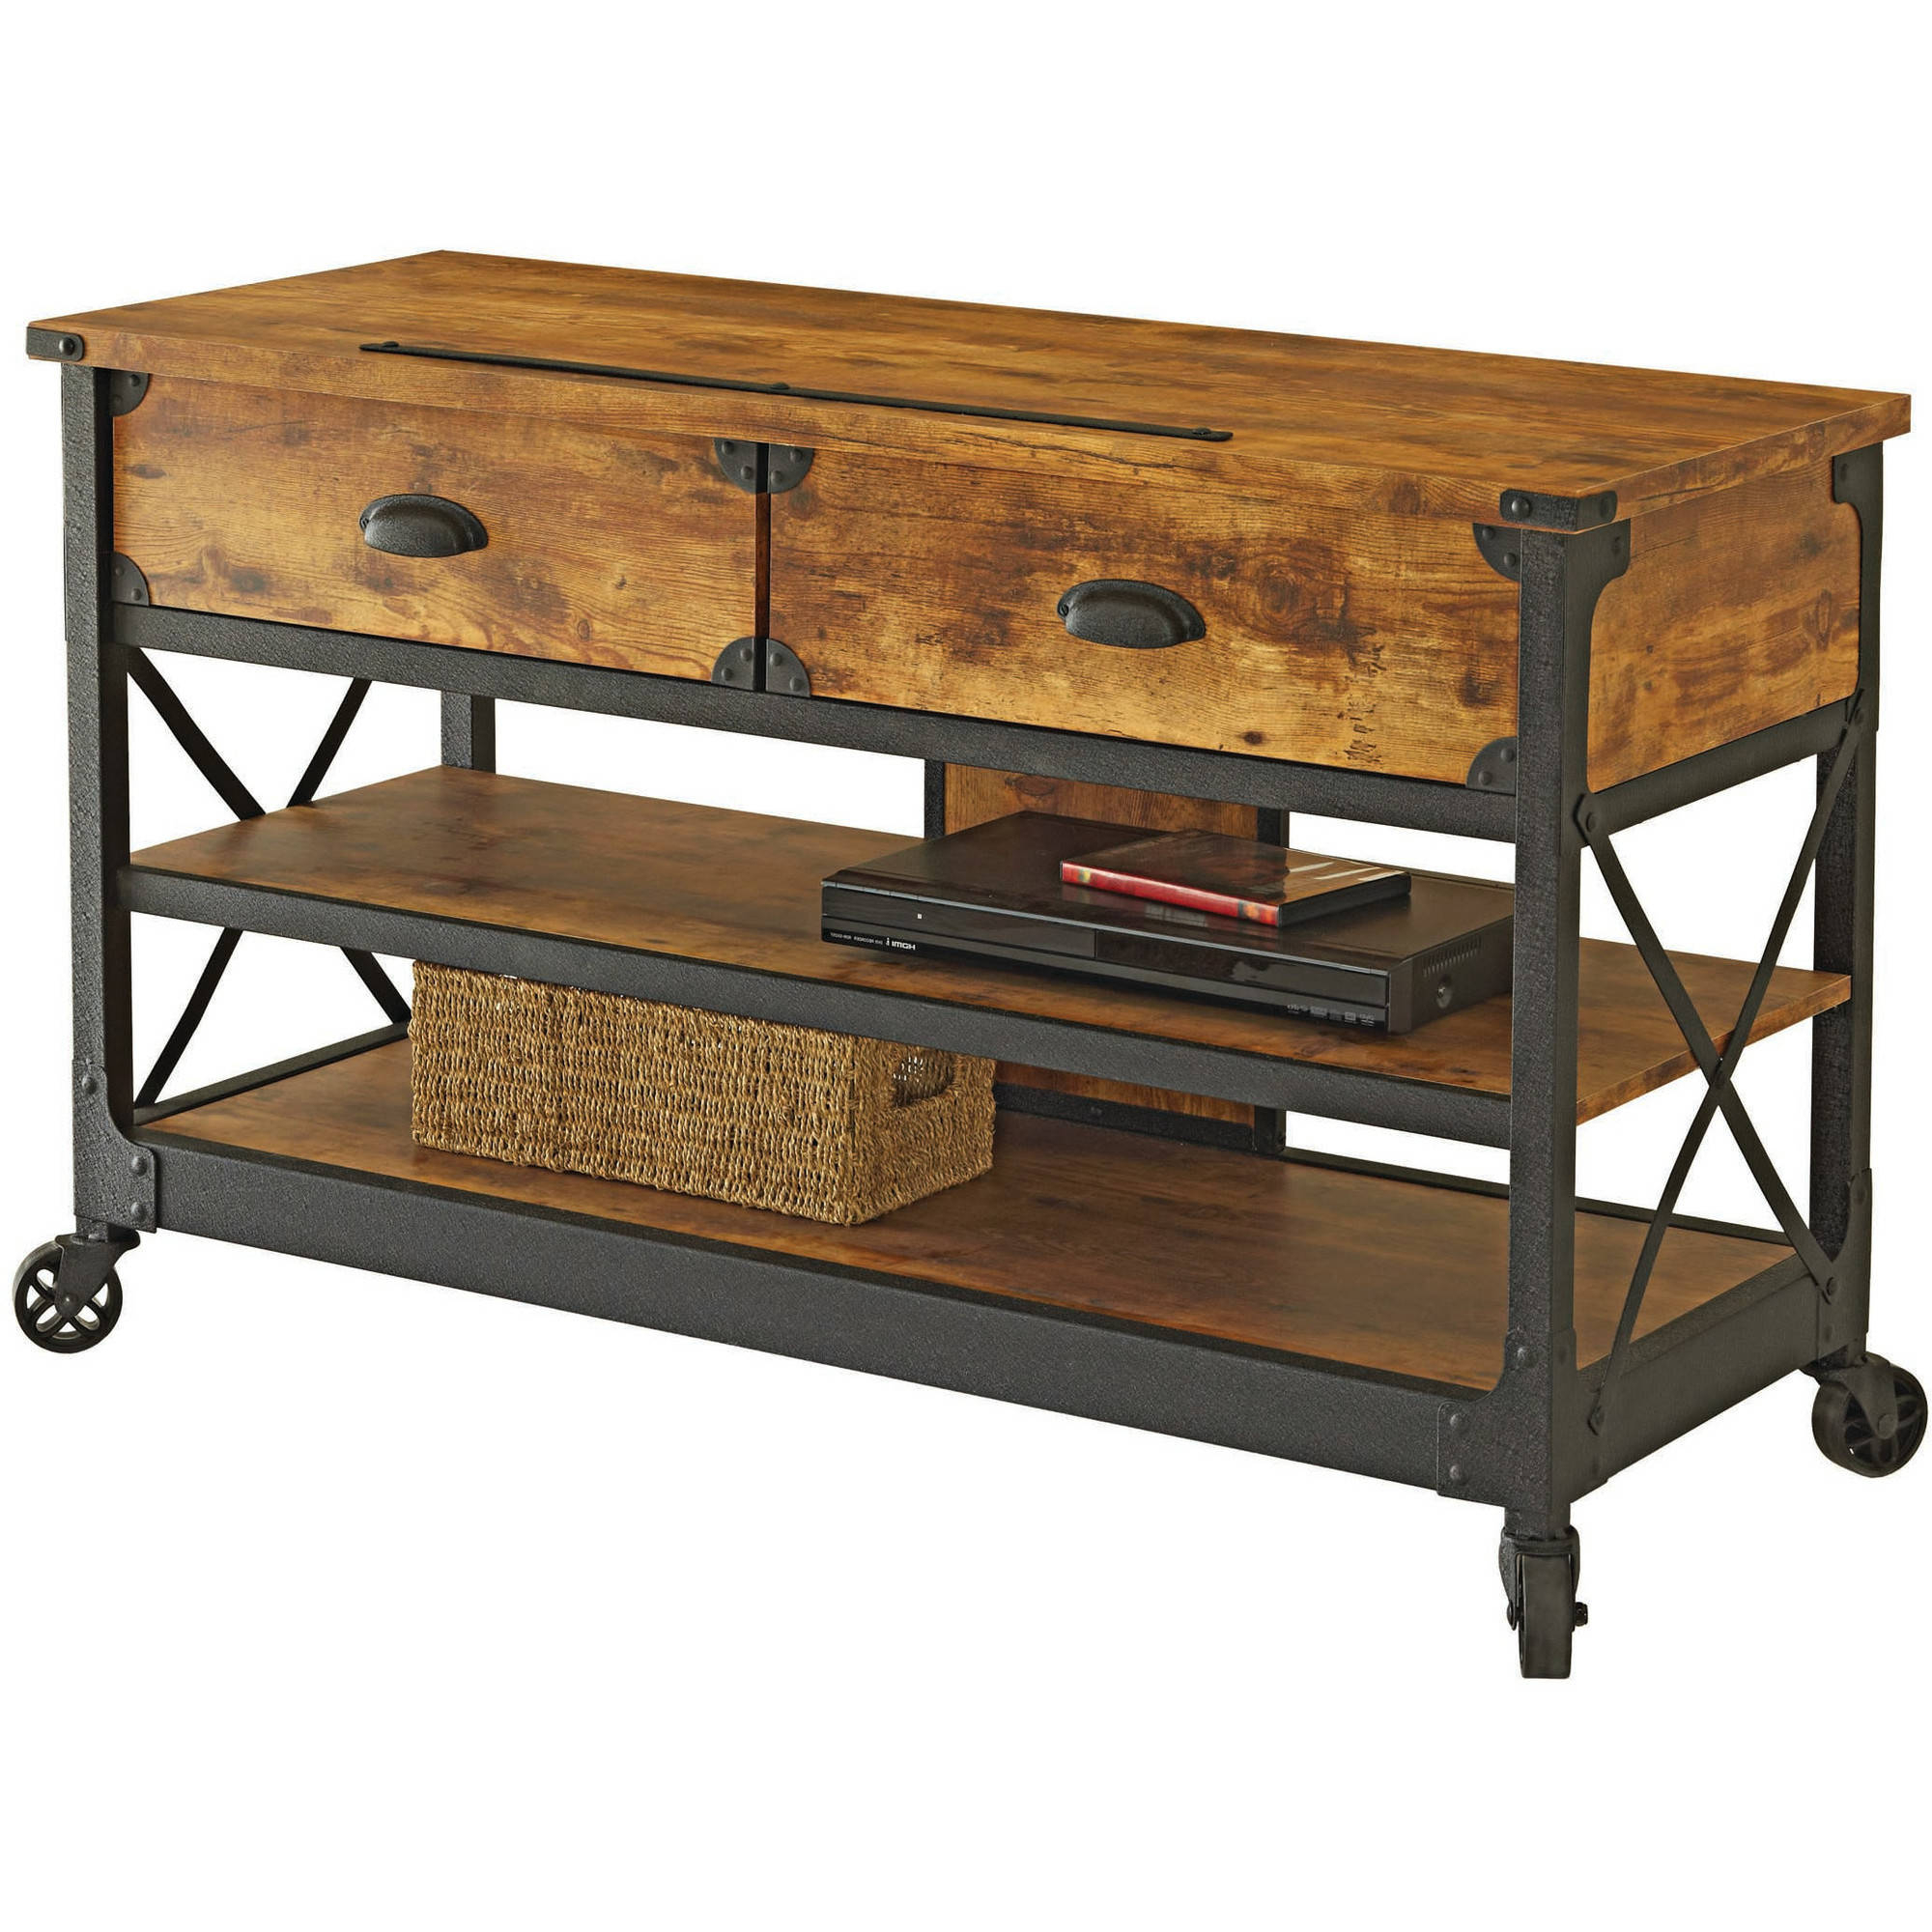 Rustic Tv Stands In Well Liked Better Homes & Gardens Rustic Country Tv Stand For Tvs Up To (View 8 of 20)